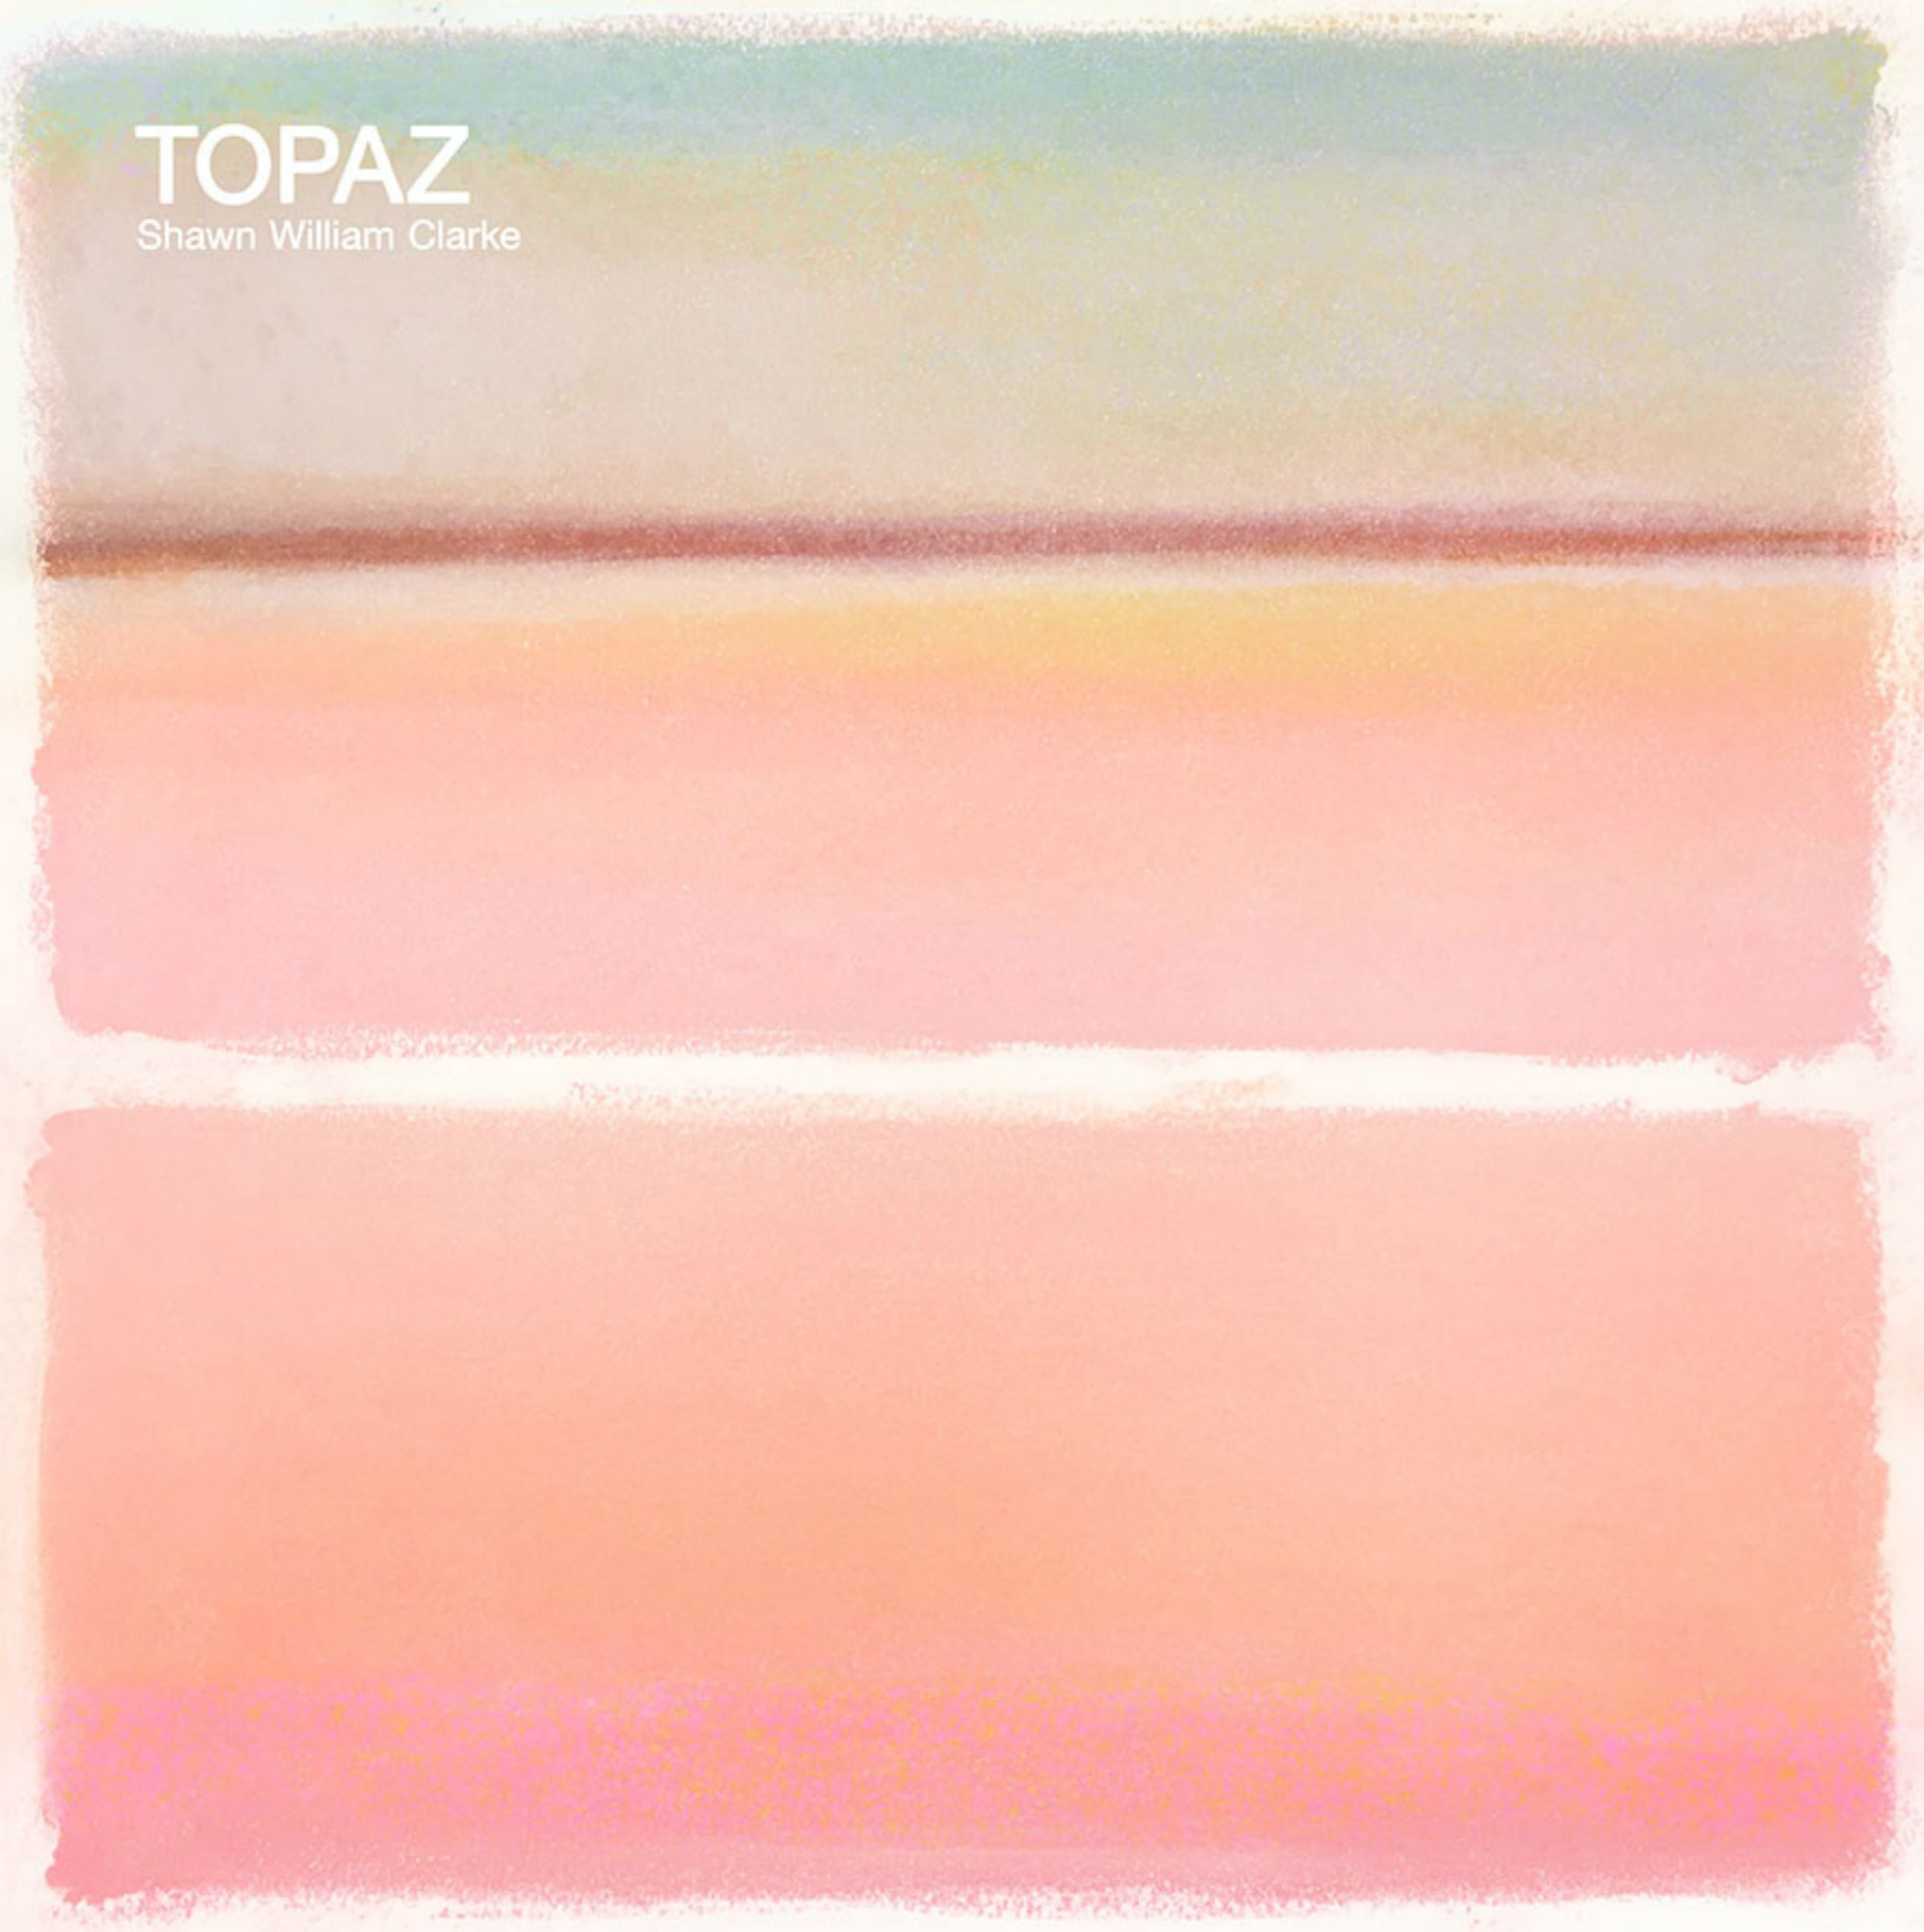 topaz_album_coverLRG copy.jpg